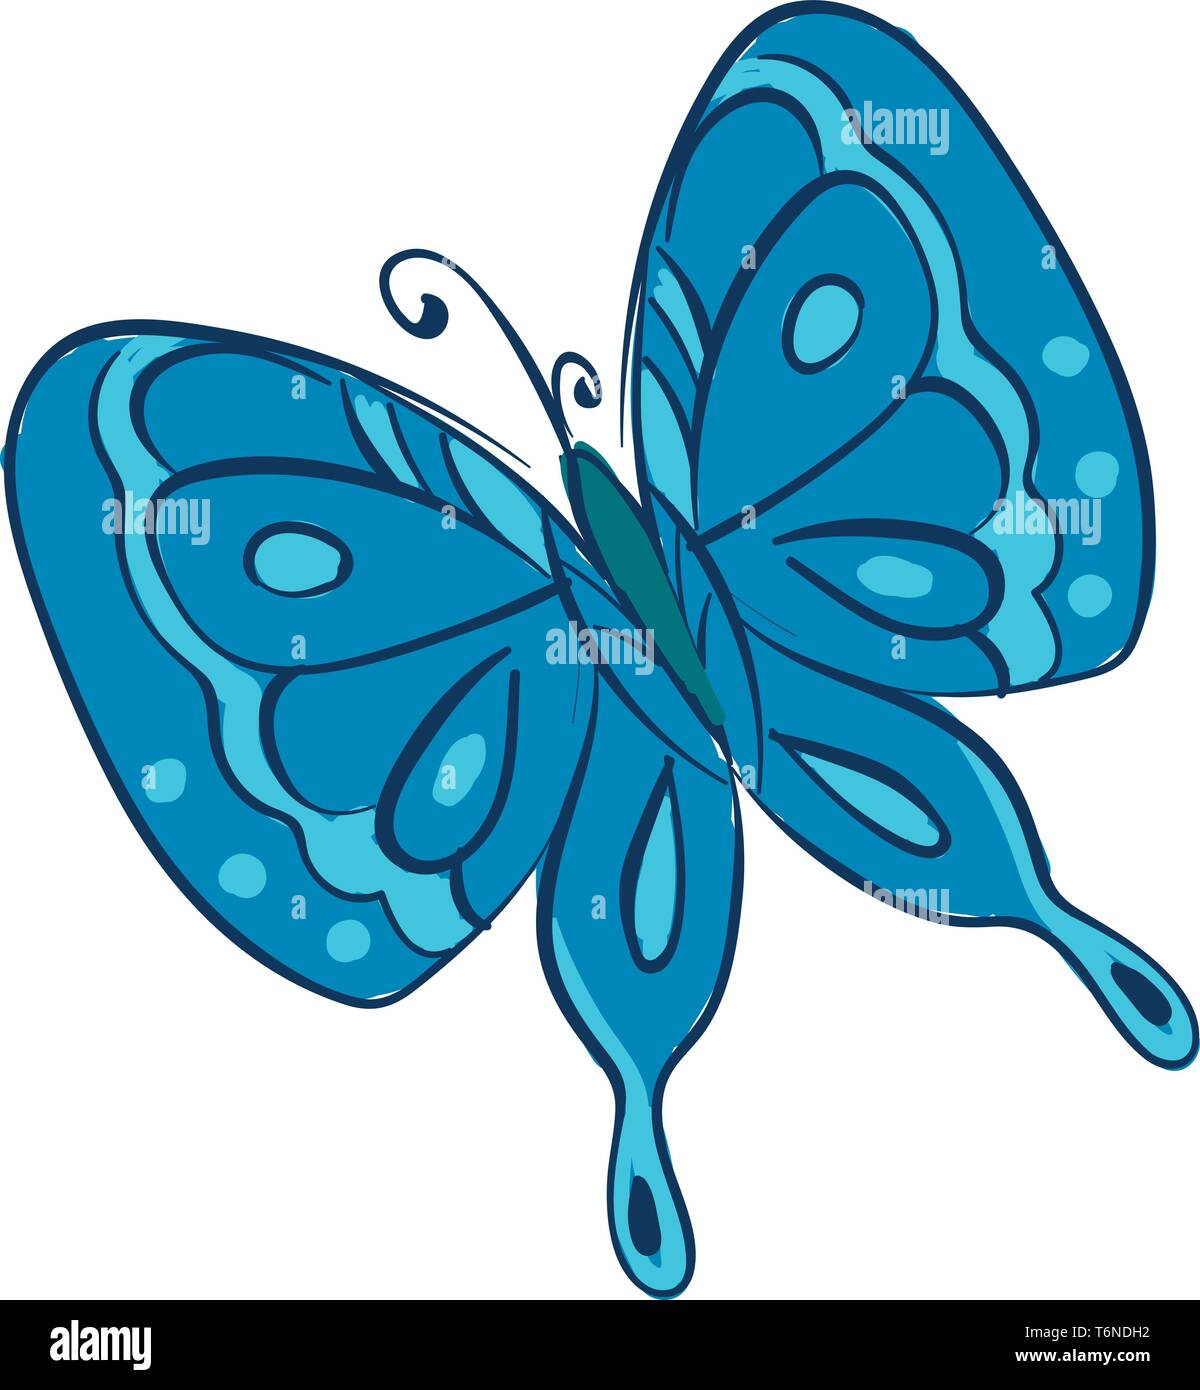 Clipart of a butterfly with two pairs of large  typically brightly blue-colored wings covered with microscopic scales of different patterns  vector  c - Stock Image